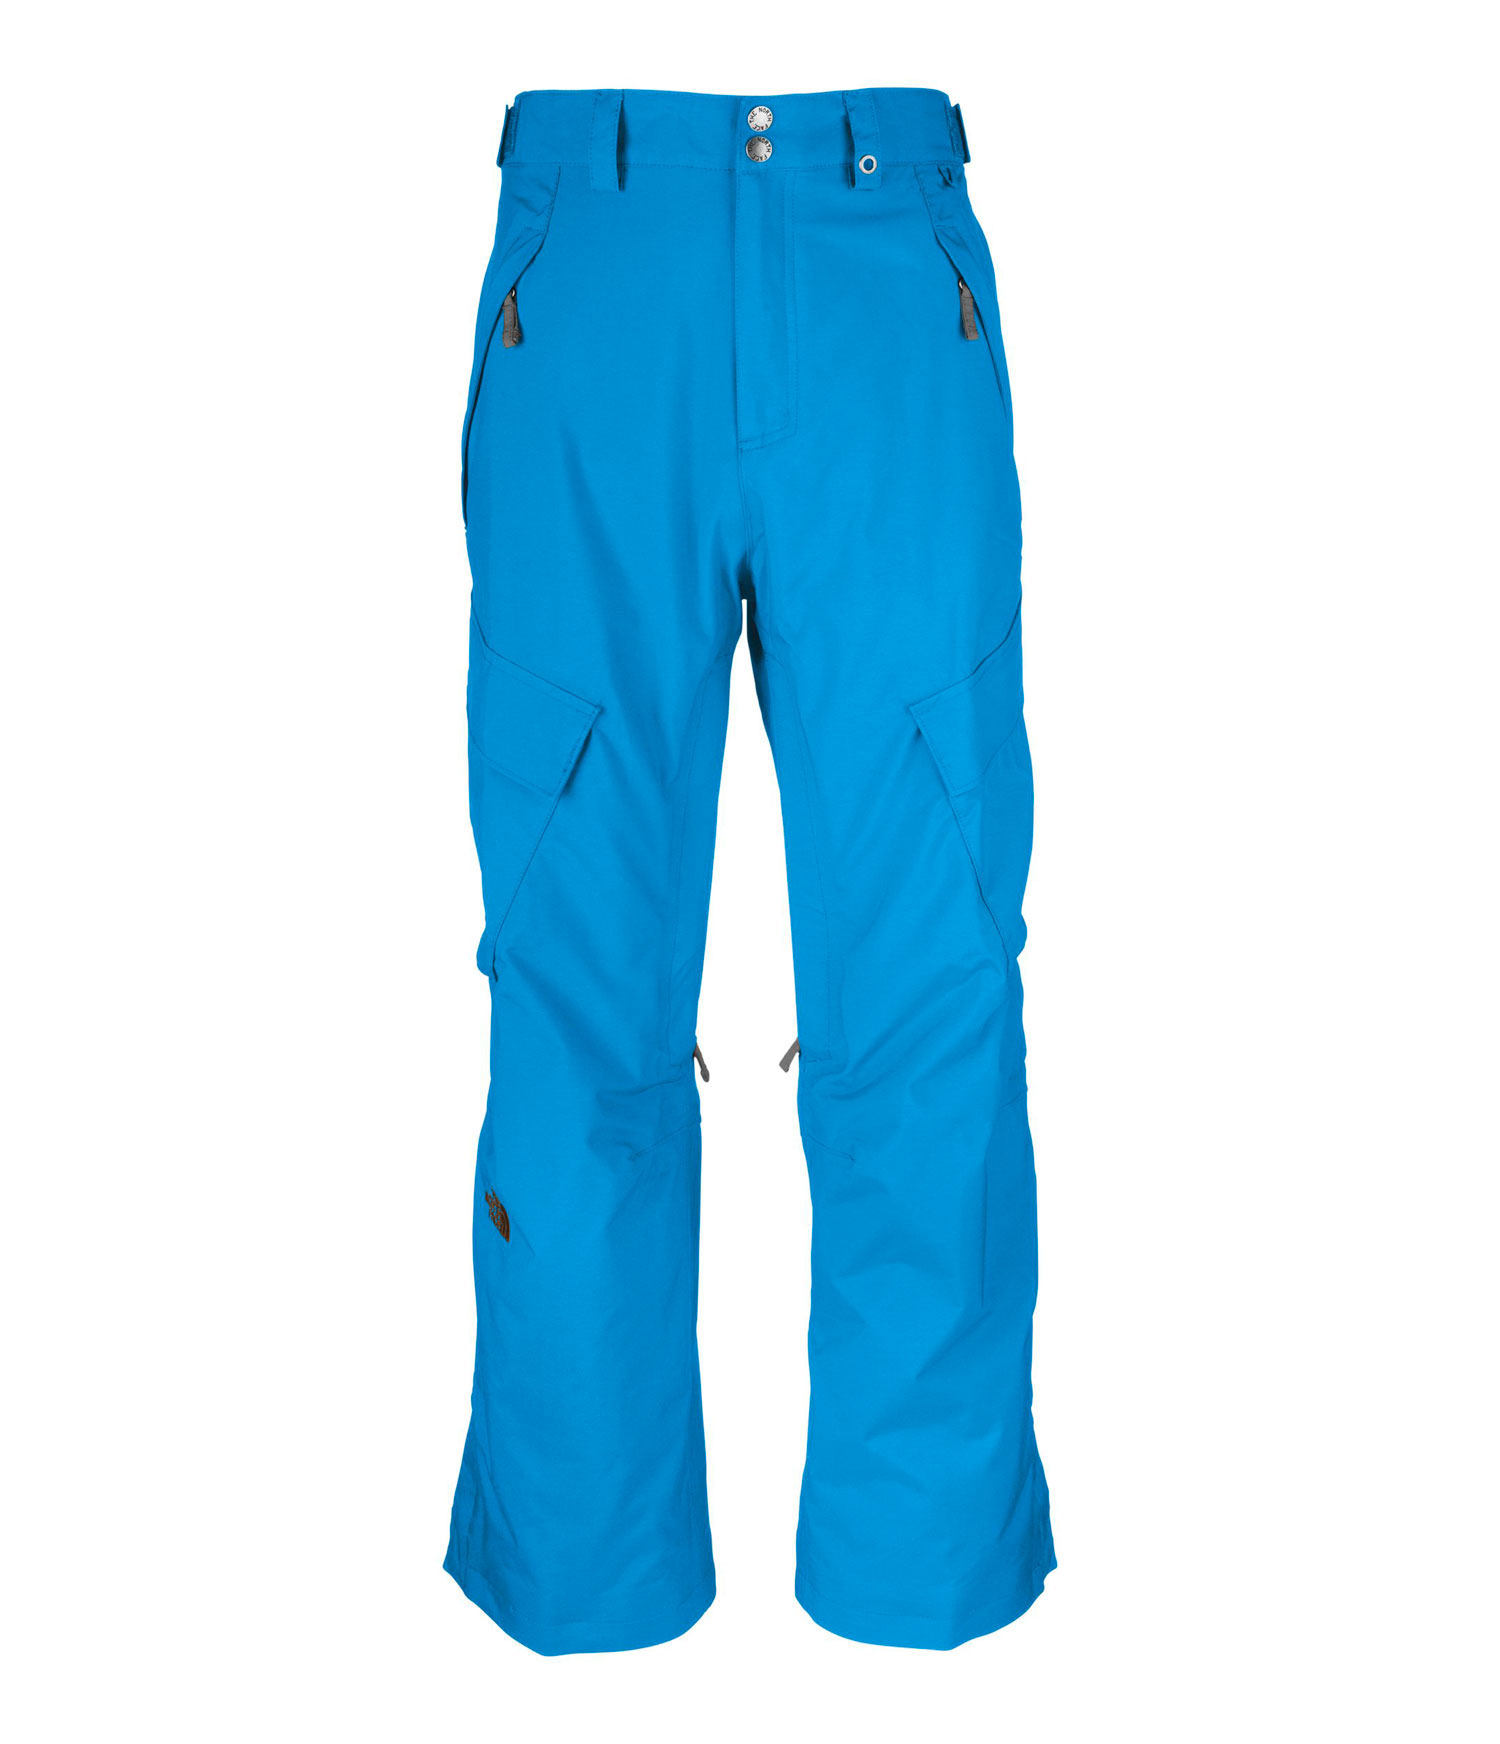 "Ski Straightforward all-around winter protection built with waterproof, breathable HyVent and an insulated seat and knees. Key Features of The North Face Slasher Cargo Ski Pants: Avg Weight: 820 g (28.92 oz) Inseam: R 31"", L 33 Fabric: shell: HyVent® 2L proweave Lining: Thermoliner seat and knees, mesh Adjustable waist tabs Zip handwarmer pockets Flap cargo pockets with Lot Lift System Zip inner thigh vents with mesh gussets Back pockets Gaiter with gripper elastic and boot hook Snap-cuff gussets Reinforced edge guards - $111.95"